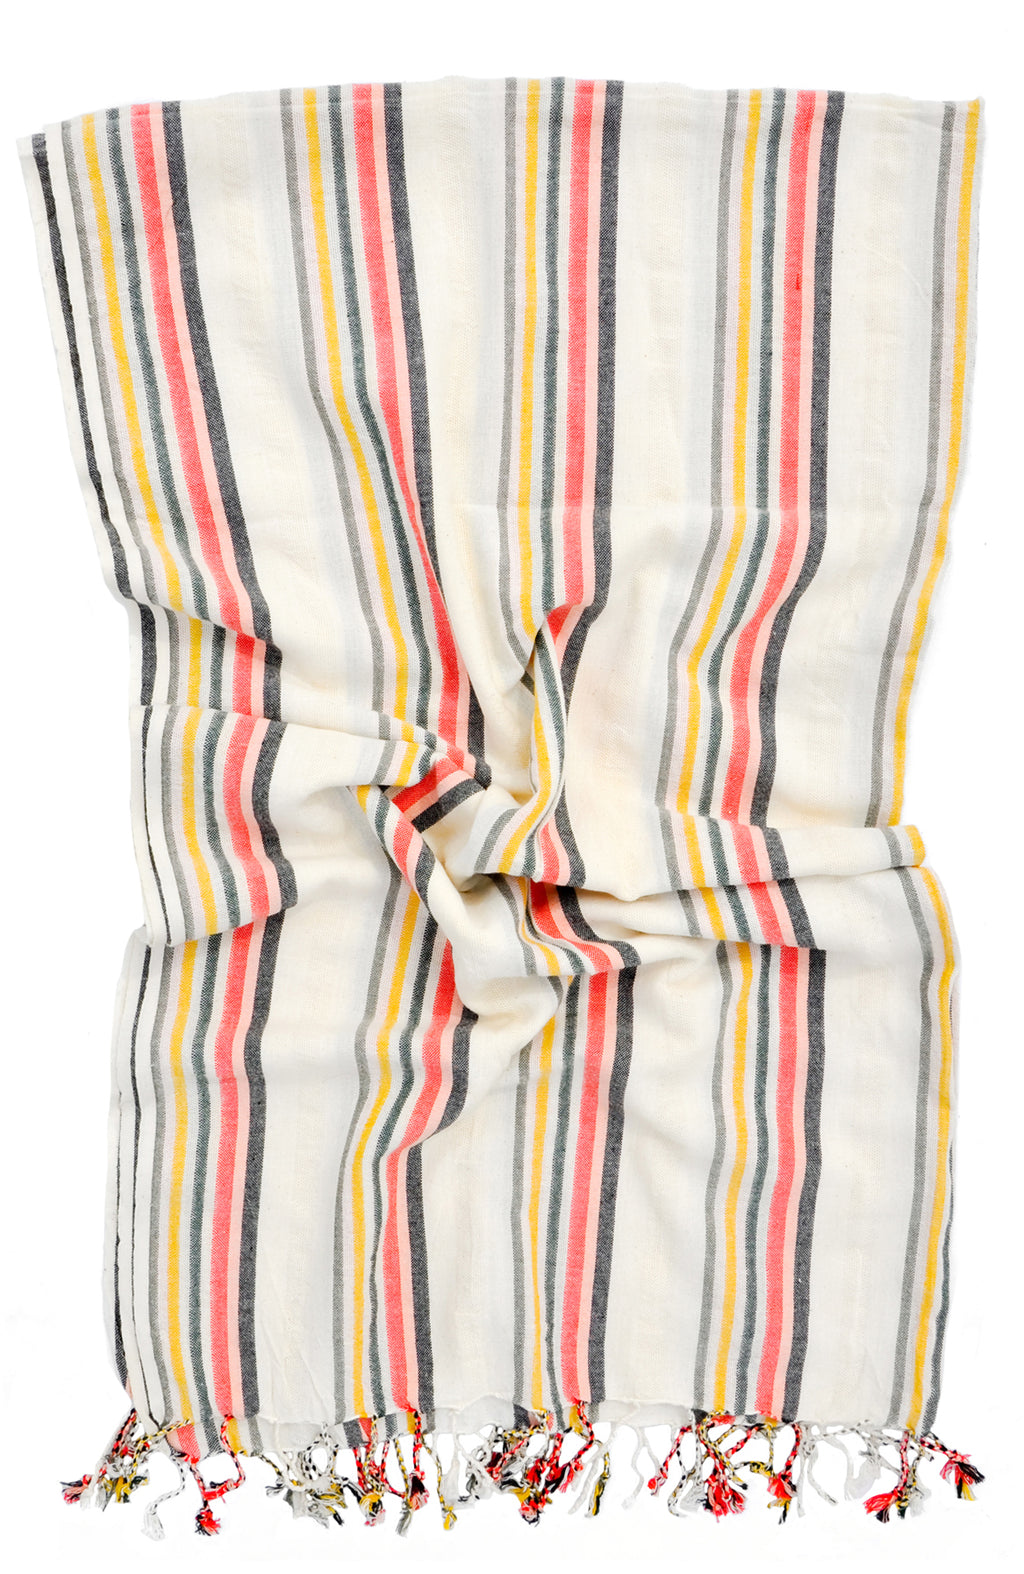 3: Soledad Turkish Towel in  - LEIF